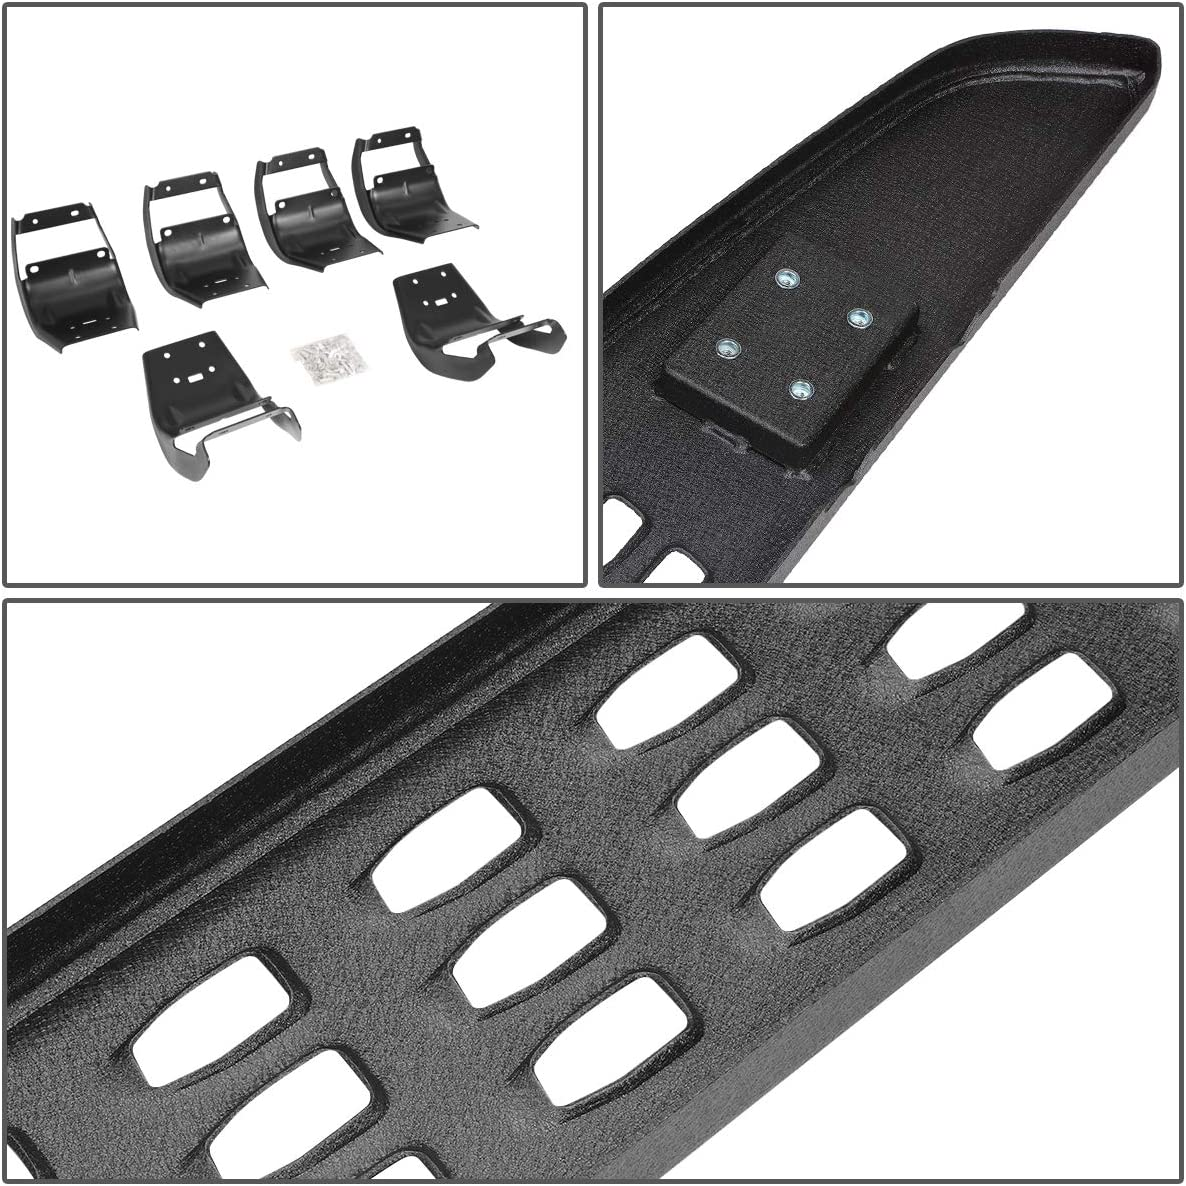 DNA MOTORING STEPB-ZTL-8142 7 Powdercoated Raptor Style Side Step Bar Running Board fit 15-19 Ford F-150 Crew Cab,Matte Black